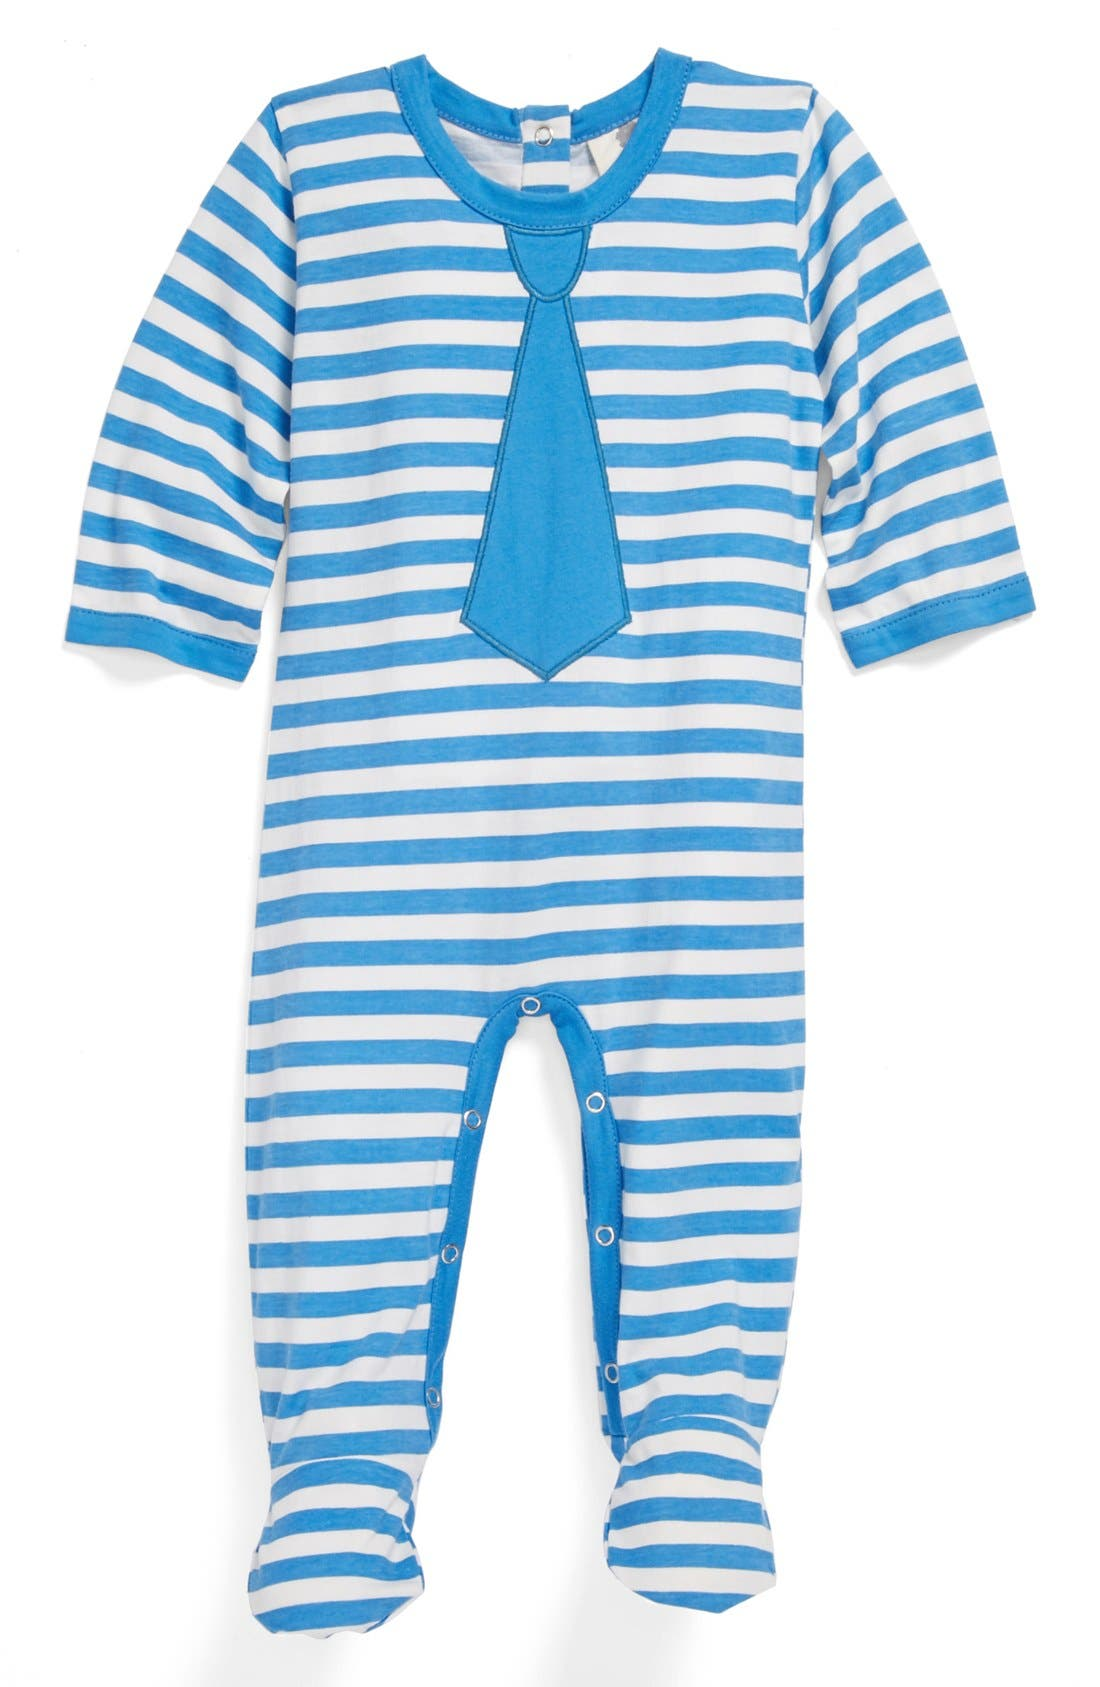 Alternate Image 1 Selected - Kate Quinn Organics Tie One Piece (Baby Boys)